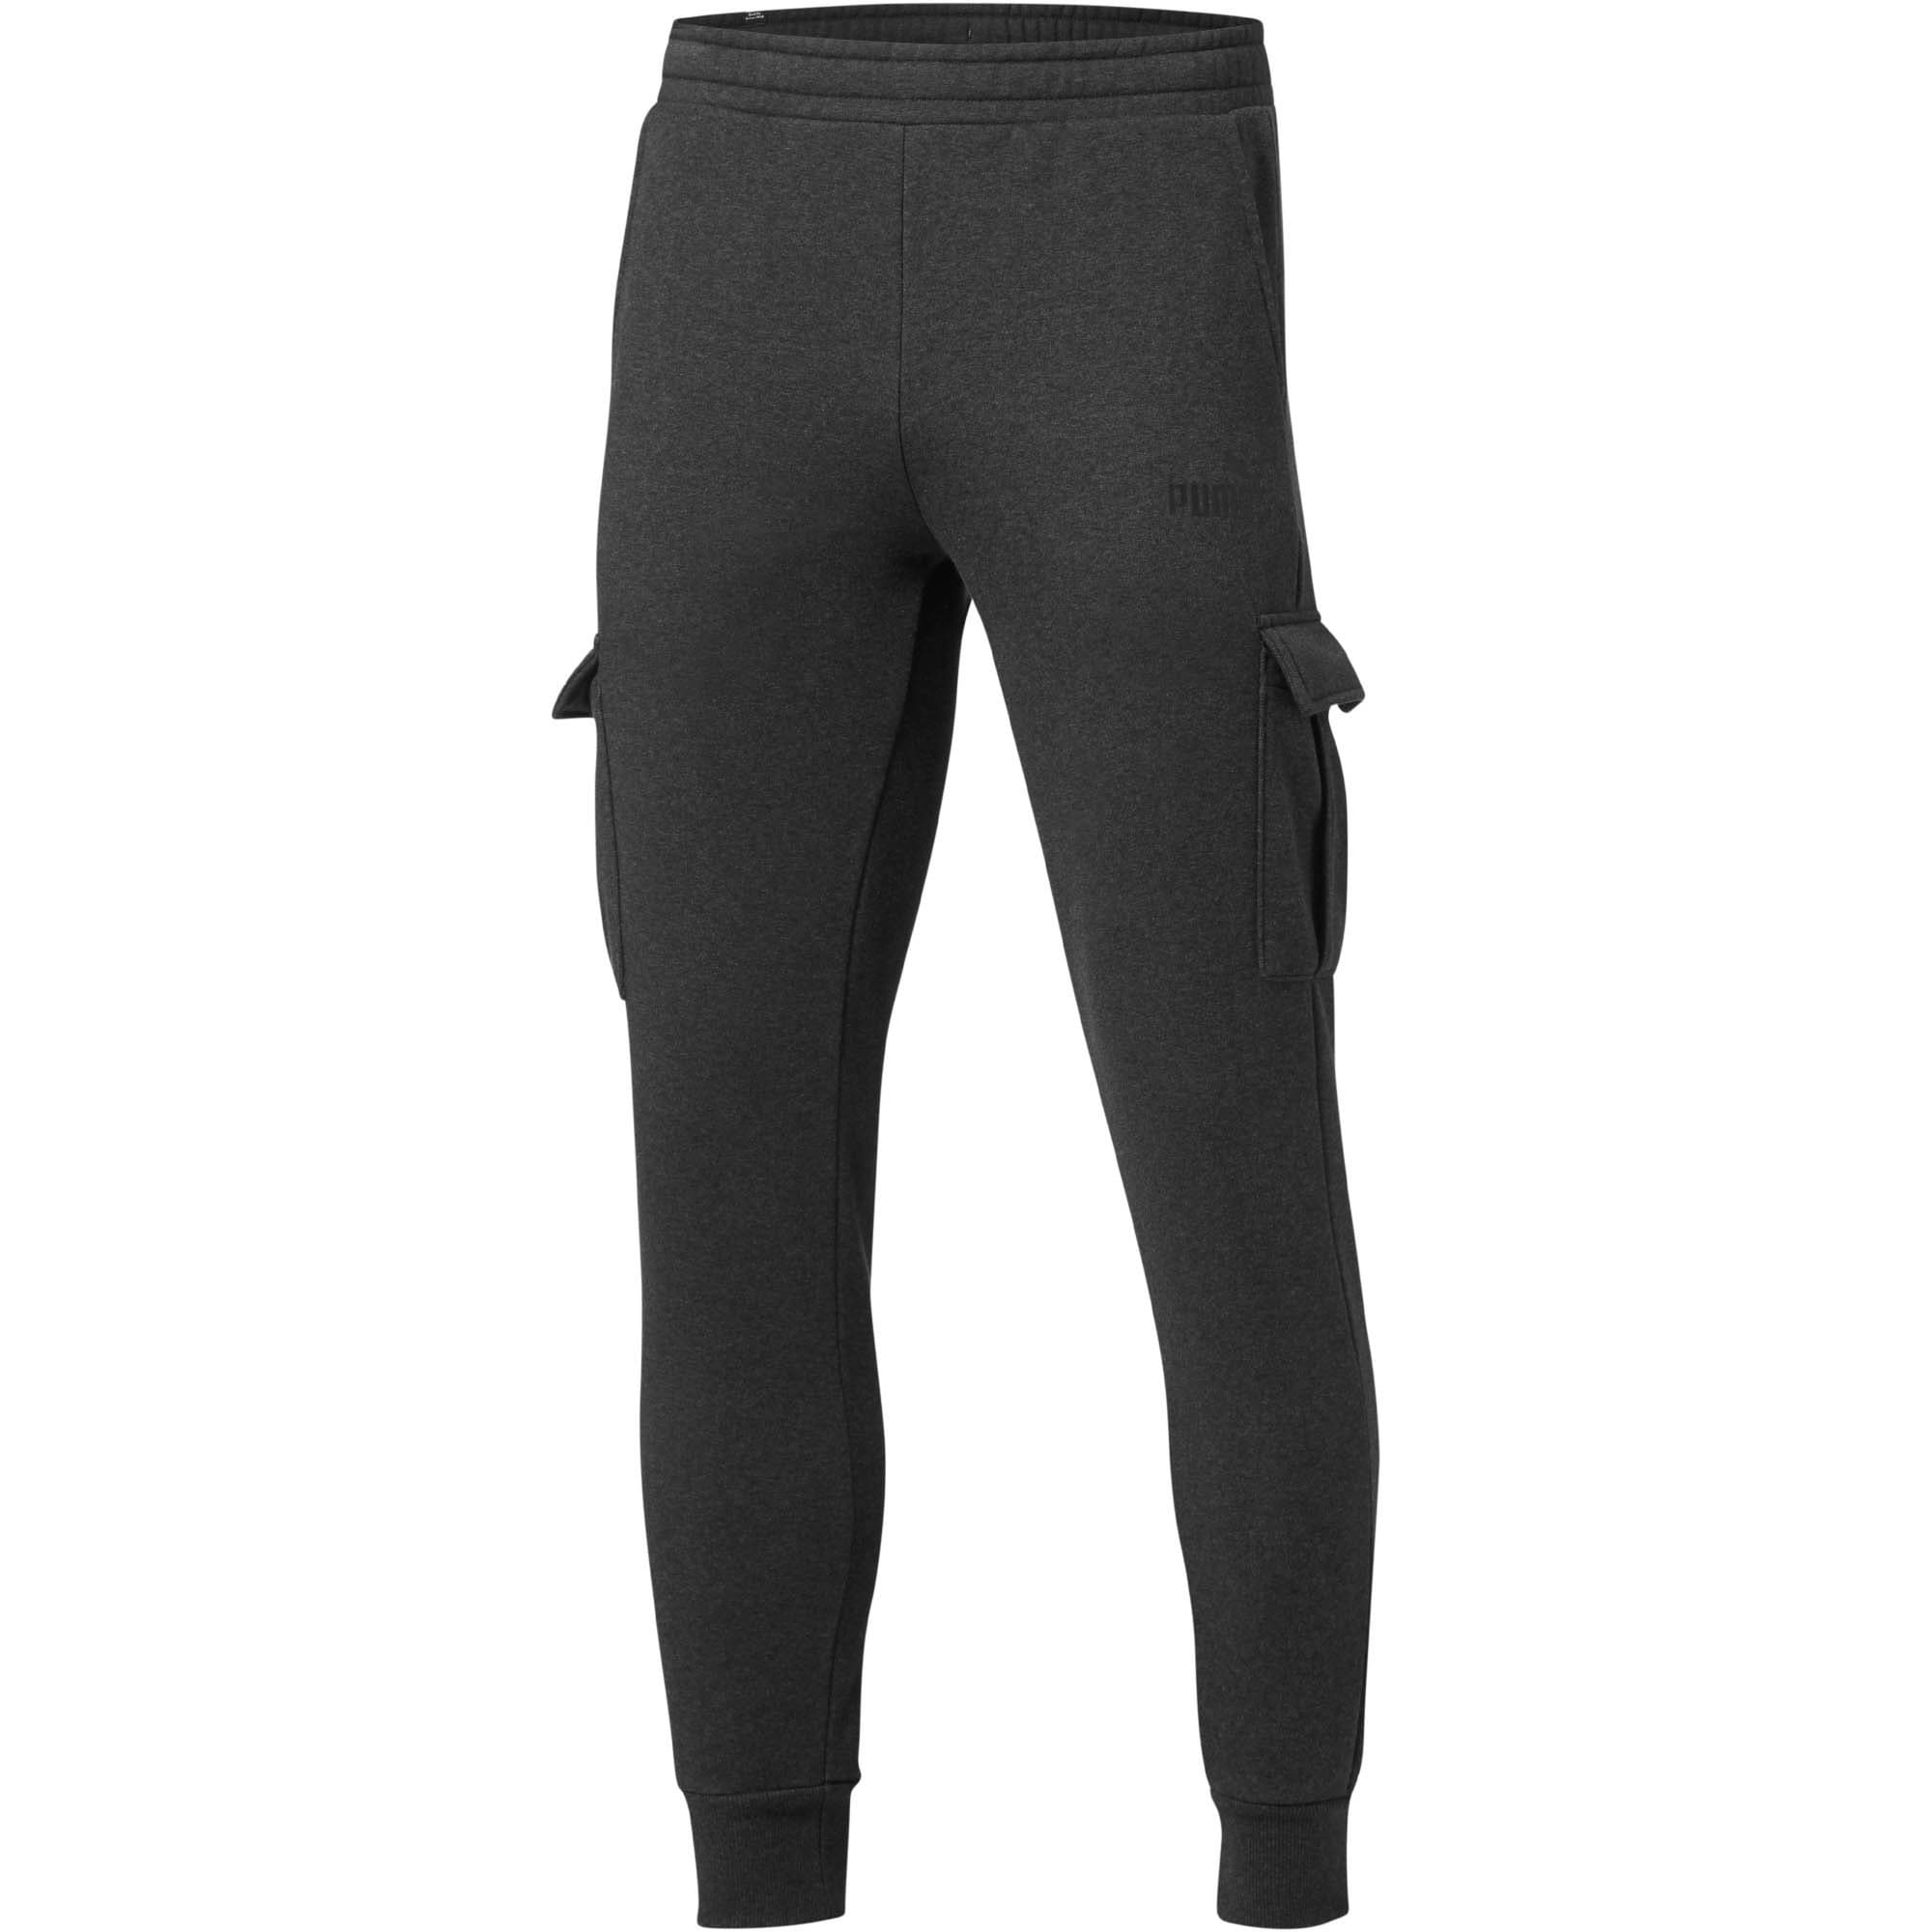 Miniatura 1 de Pantalones Essentials+ con bolsillos para hombre, Dark Gray Heather, mediano